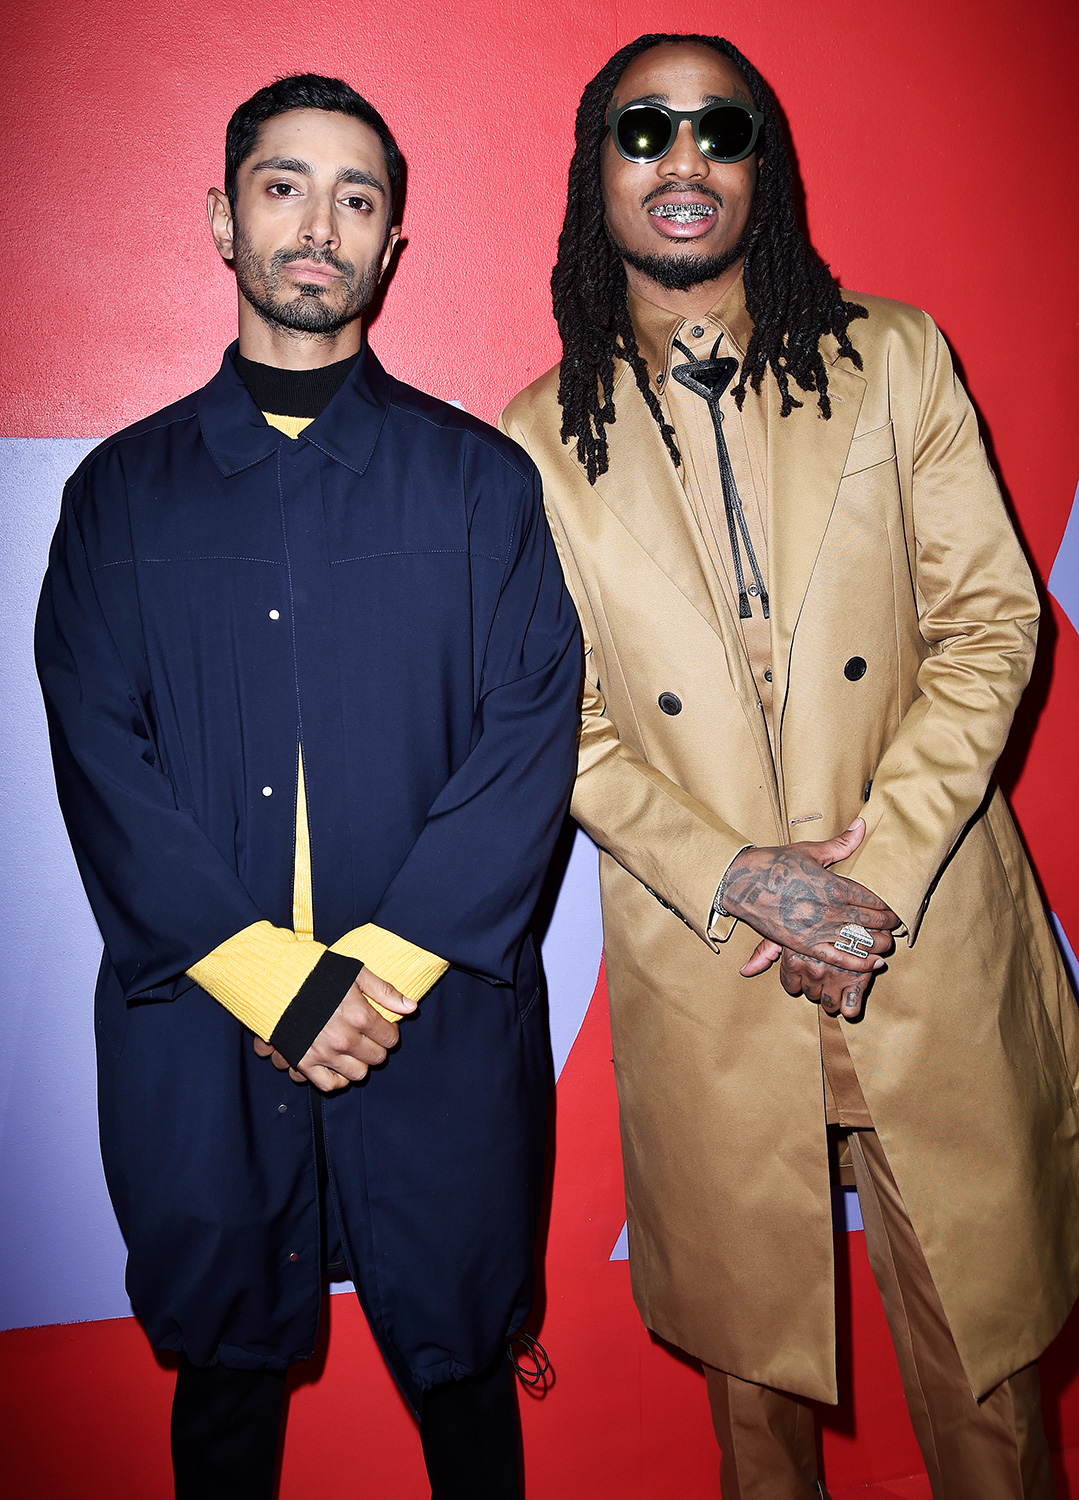 Riz Ahmed (L) and Quavo (R) attend the Prada Show during Milan Menswear Fashion Week Fall/Winter 2020/21 on January 12, 2020 in Milan, Italy.